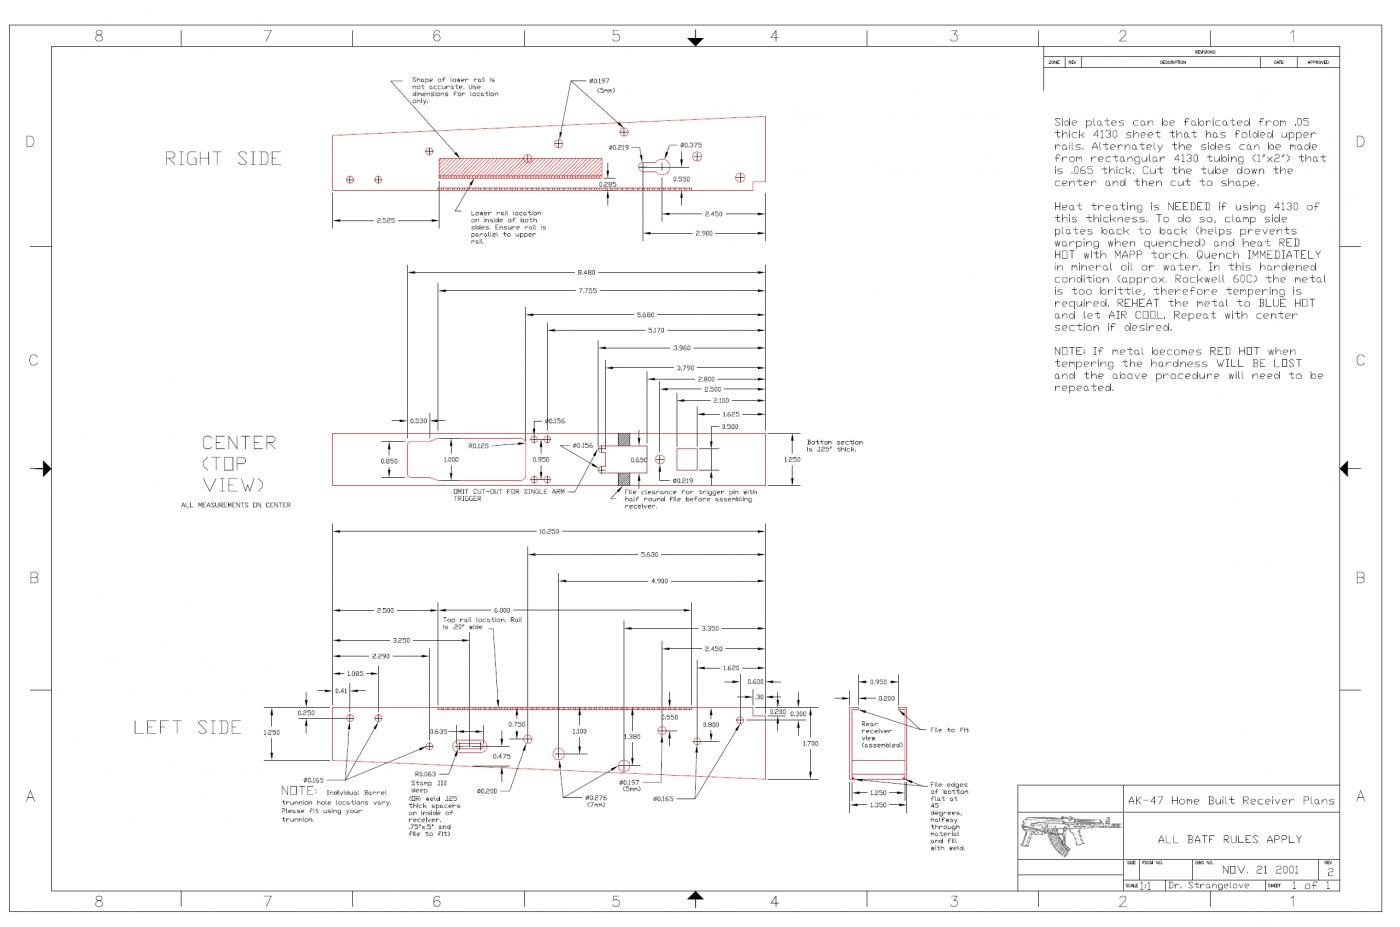 Autocad Engine Wiring Harness Drawing further Inch Bearing Locknuts in addition 28013 Screw Plugs With Hexagon Socket DIN 906 Tapered Thread in addition  moreover MS51861 Mil Spec Hardware. on threads in cad drawing